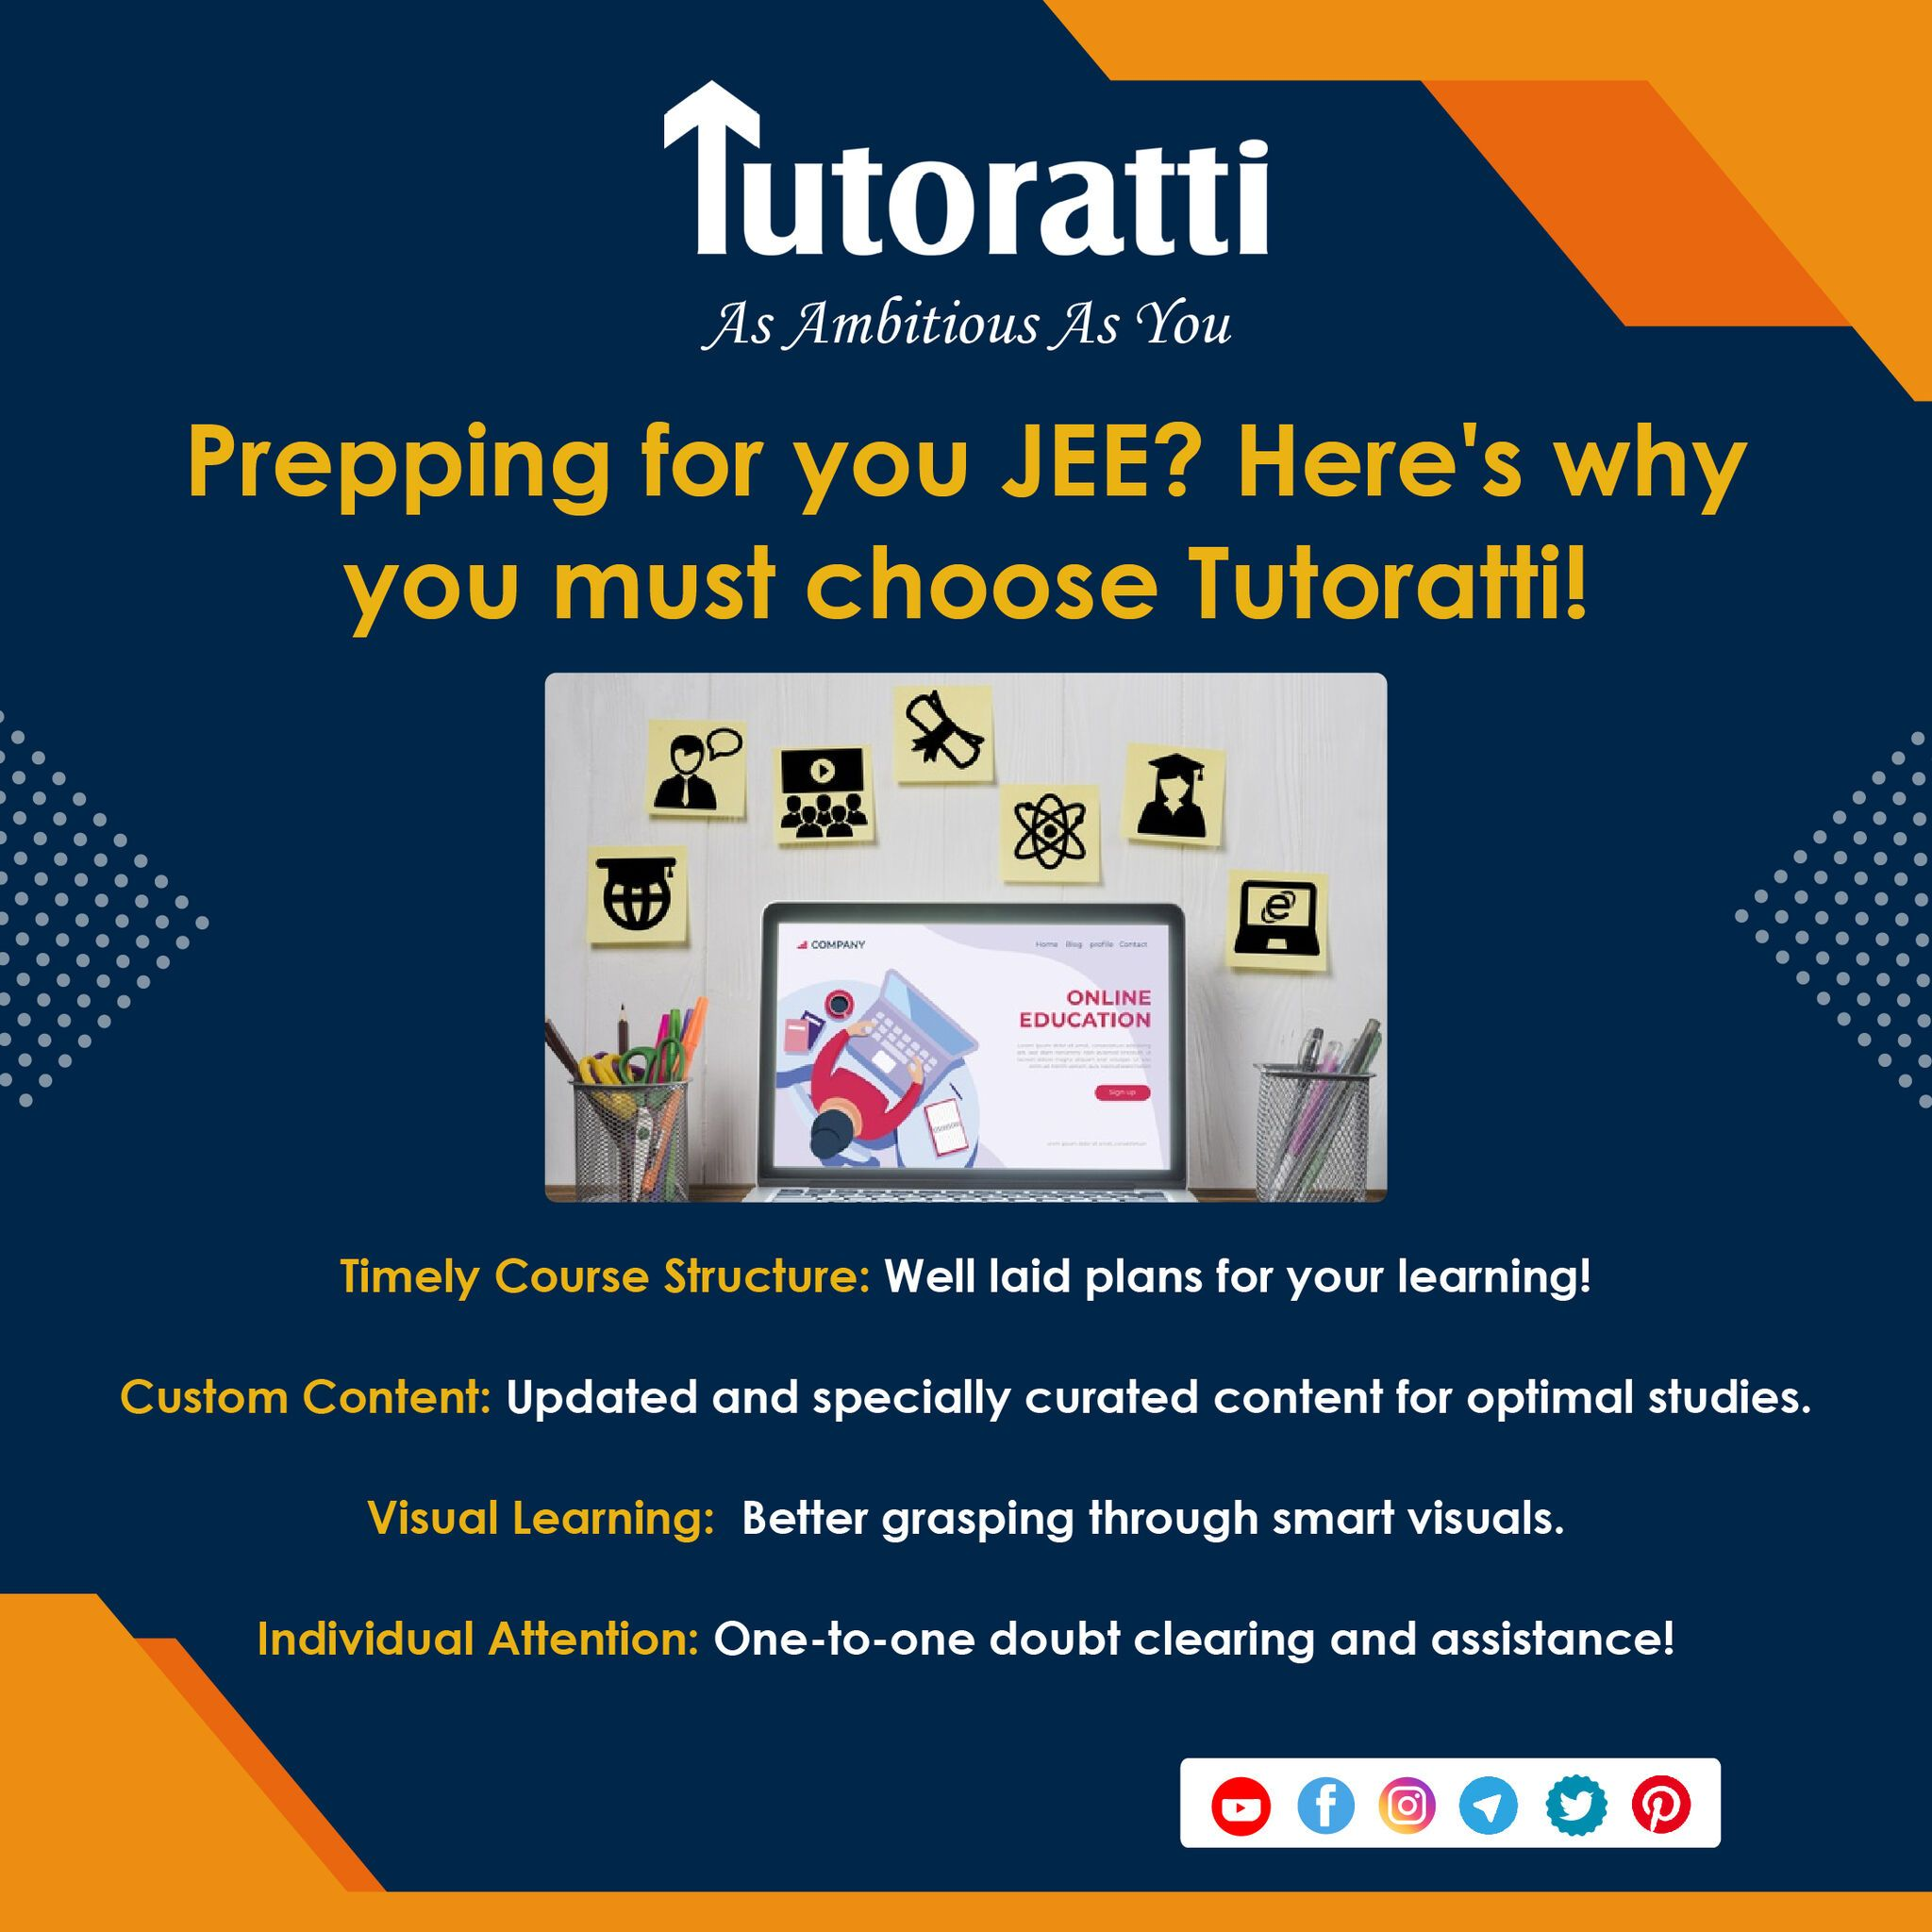 Prepping for you JEE? Here's why you must choose Tutoratti! 1. Timely Course Structure: well-laid plans for your learning! 2. Custom Content: Updated and specially curated content for optimal studies. 3. Visual Learning: better grasping through smart visuals. 4. Individual Attention: one-to-one doubt clearing and assistance! . . . . . #Pune #Tutoratti #OnlineLearning #LearningNeverStops #education #learning #onlineclasses #liveclasses #onlinestudy #onlineclass #onlineeducation